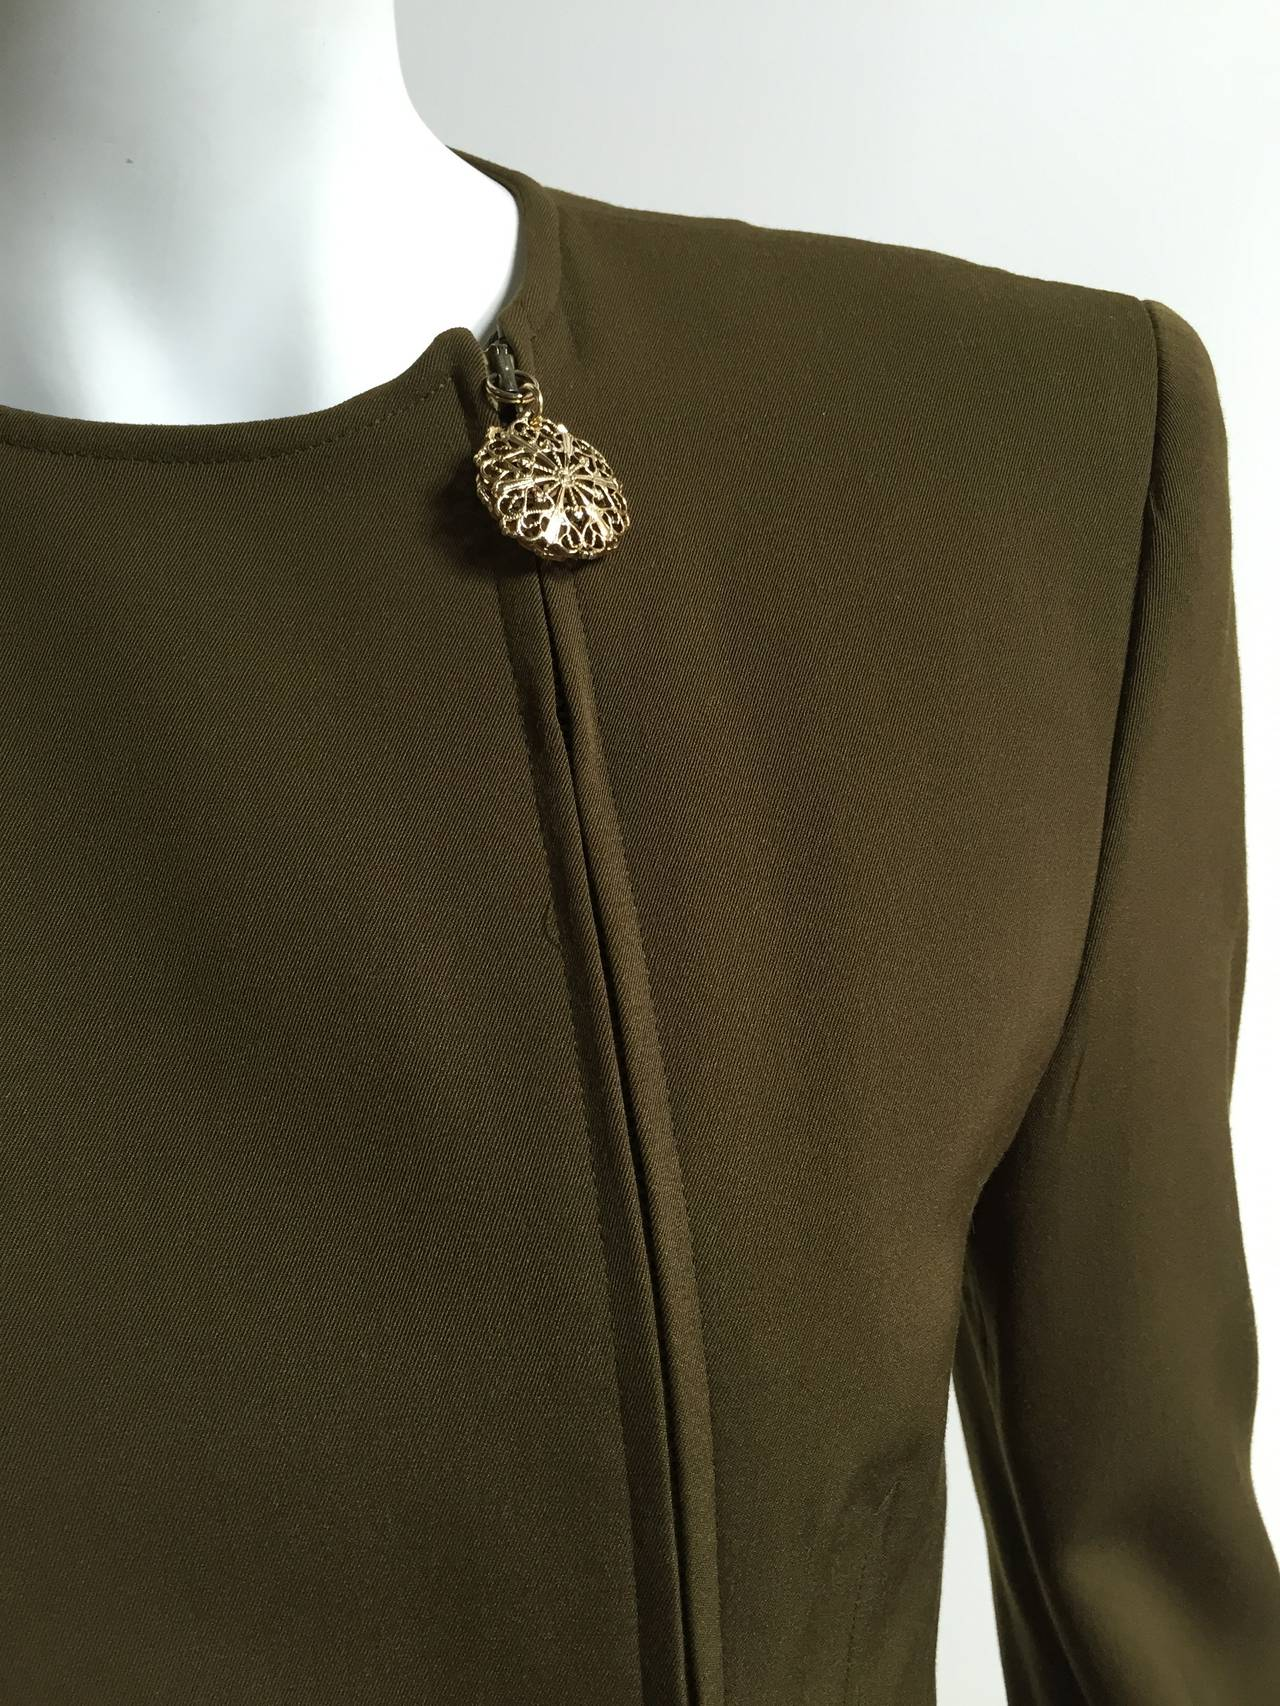 Genny by Versace Olive Skirt Suit Size 4  4